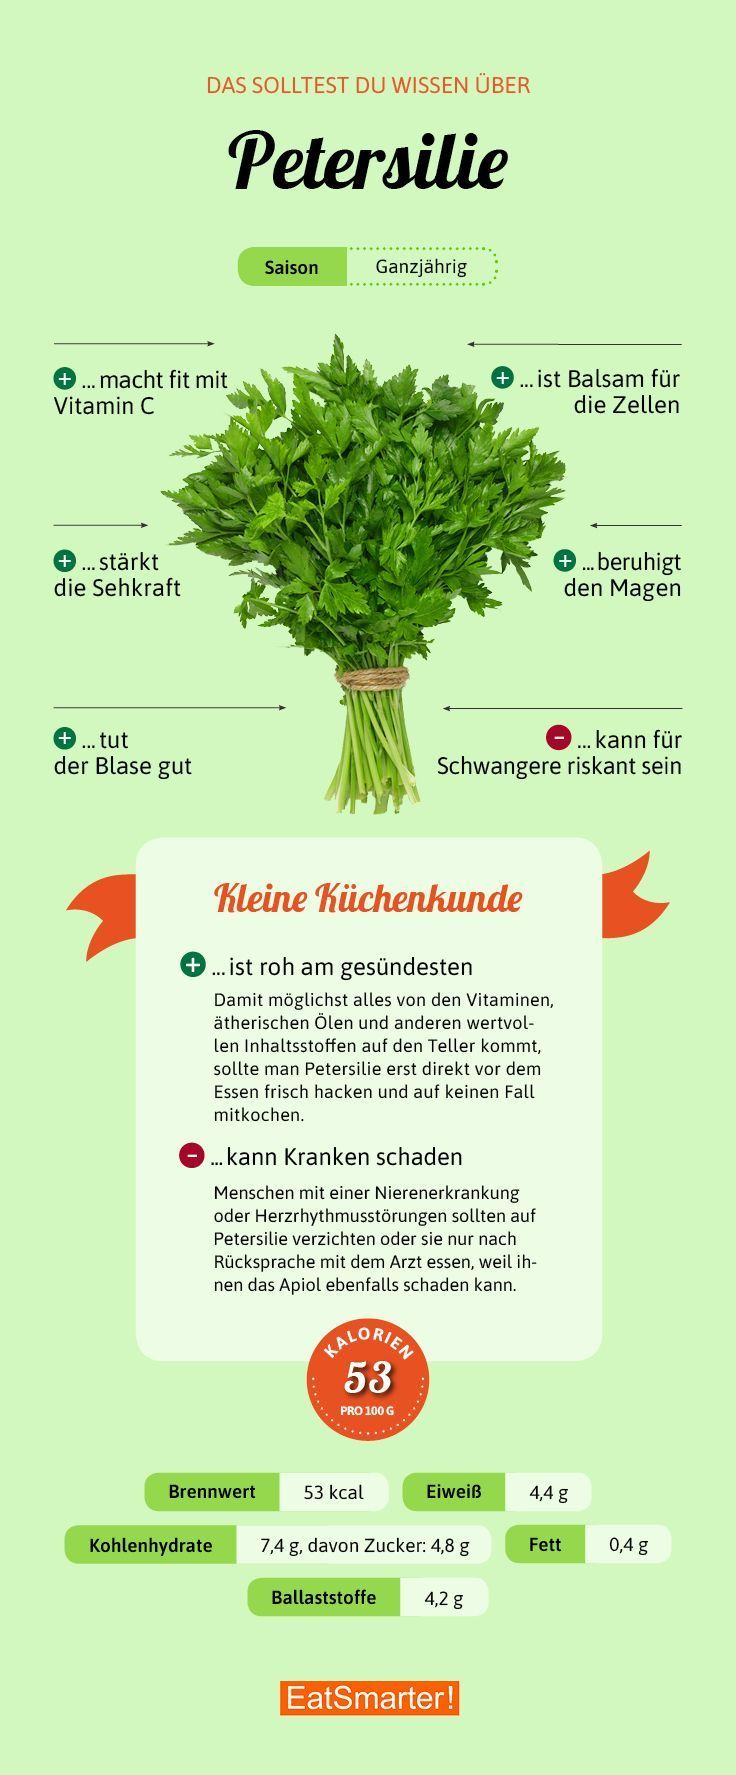 Petersilie Darum Ist Petersilie So Gesund Eatsmarter De Petersilie Infografik Ernahrung It Is Crucial For People Needi In 2020 Eat Smart Nutrition Food Facts